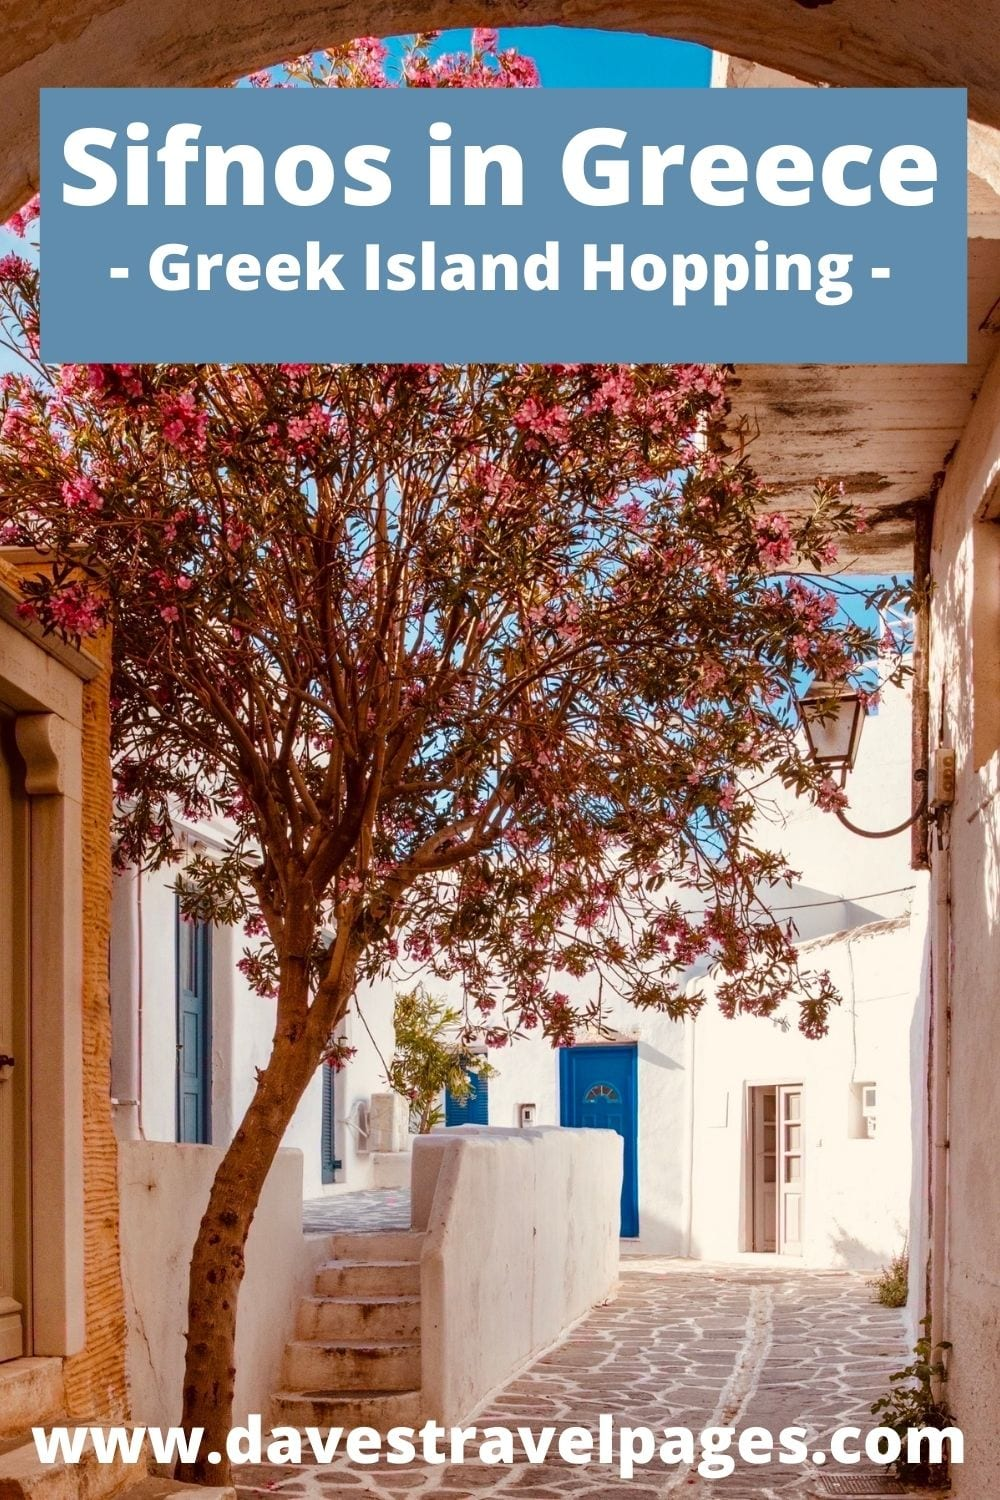 Greek island hopping from Naxos to Sifnos in Greece